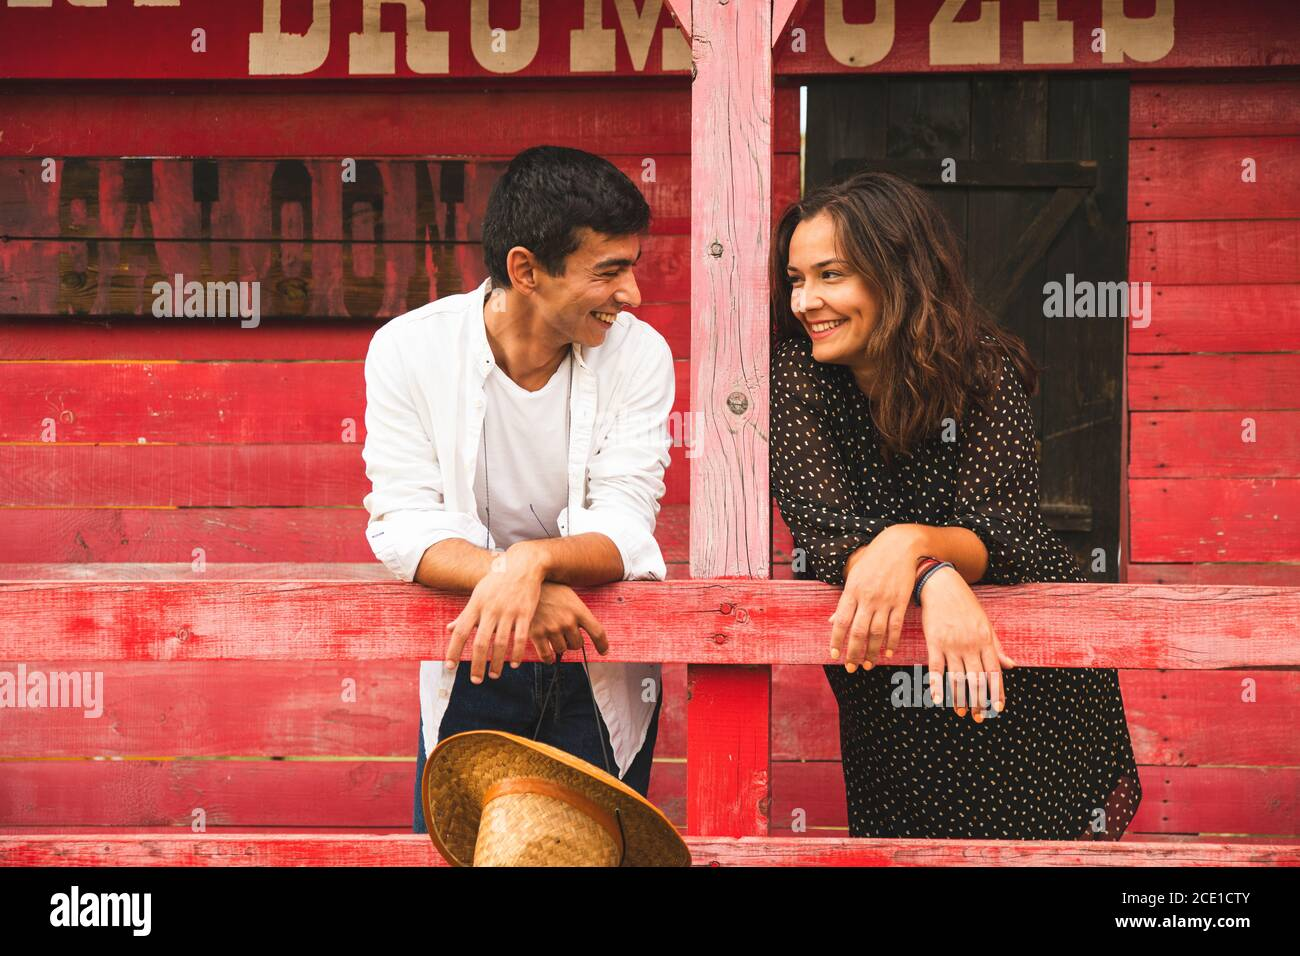 Pretty Couple Flirting and Smiling Each Other Outside of a Red Wooden Saloon. Ranch Concept Photography Stock Photo